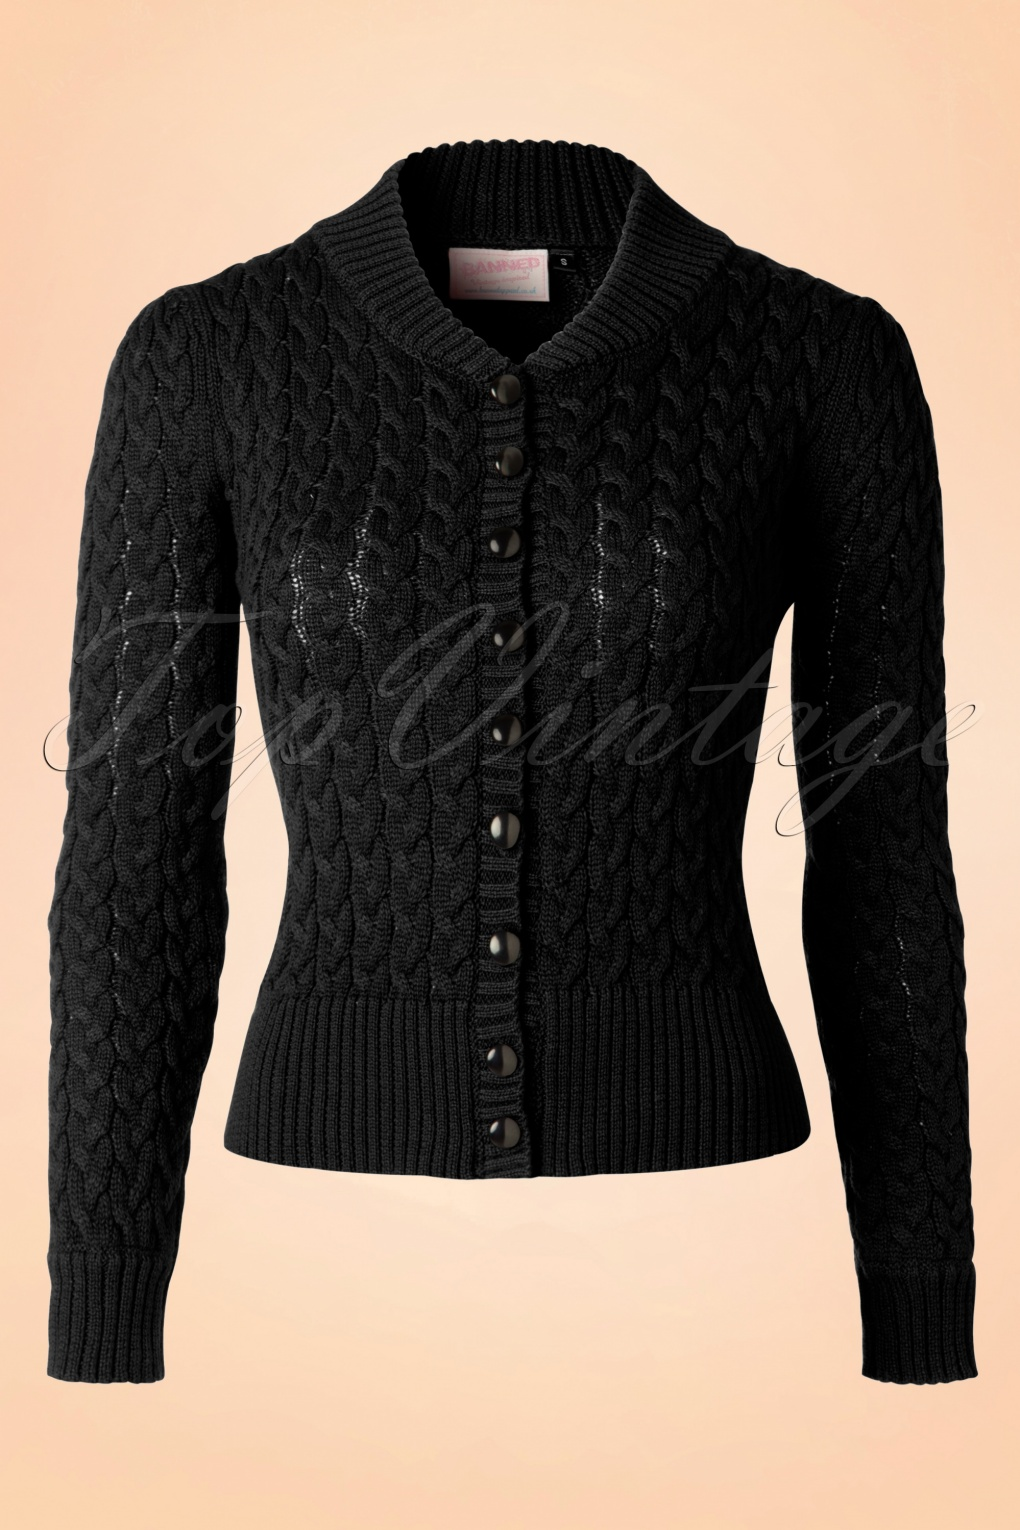 1950s Style Sweaters, Crop Cardigans, Twin Sets 50s No Doubt Cardigan in Black £34.24 AT vintagedancer.com